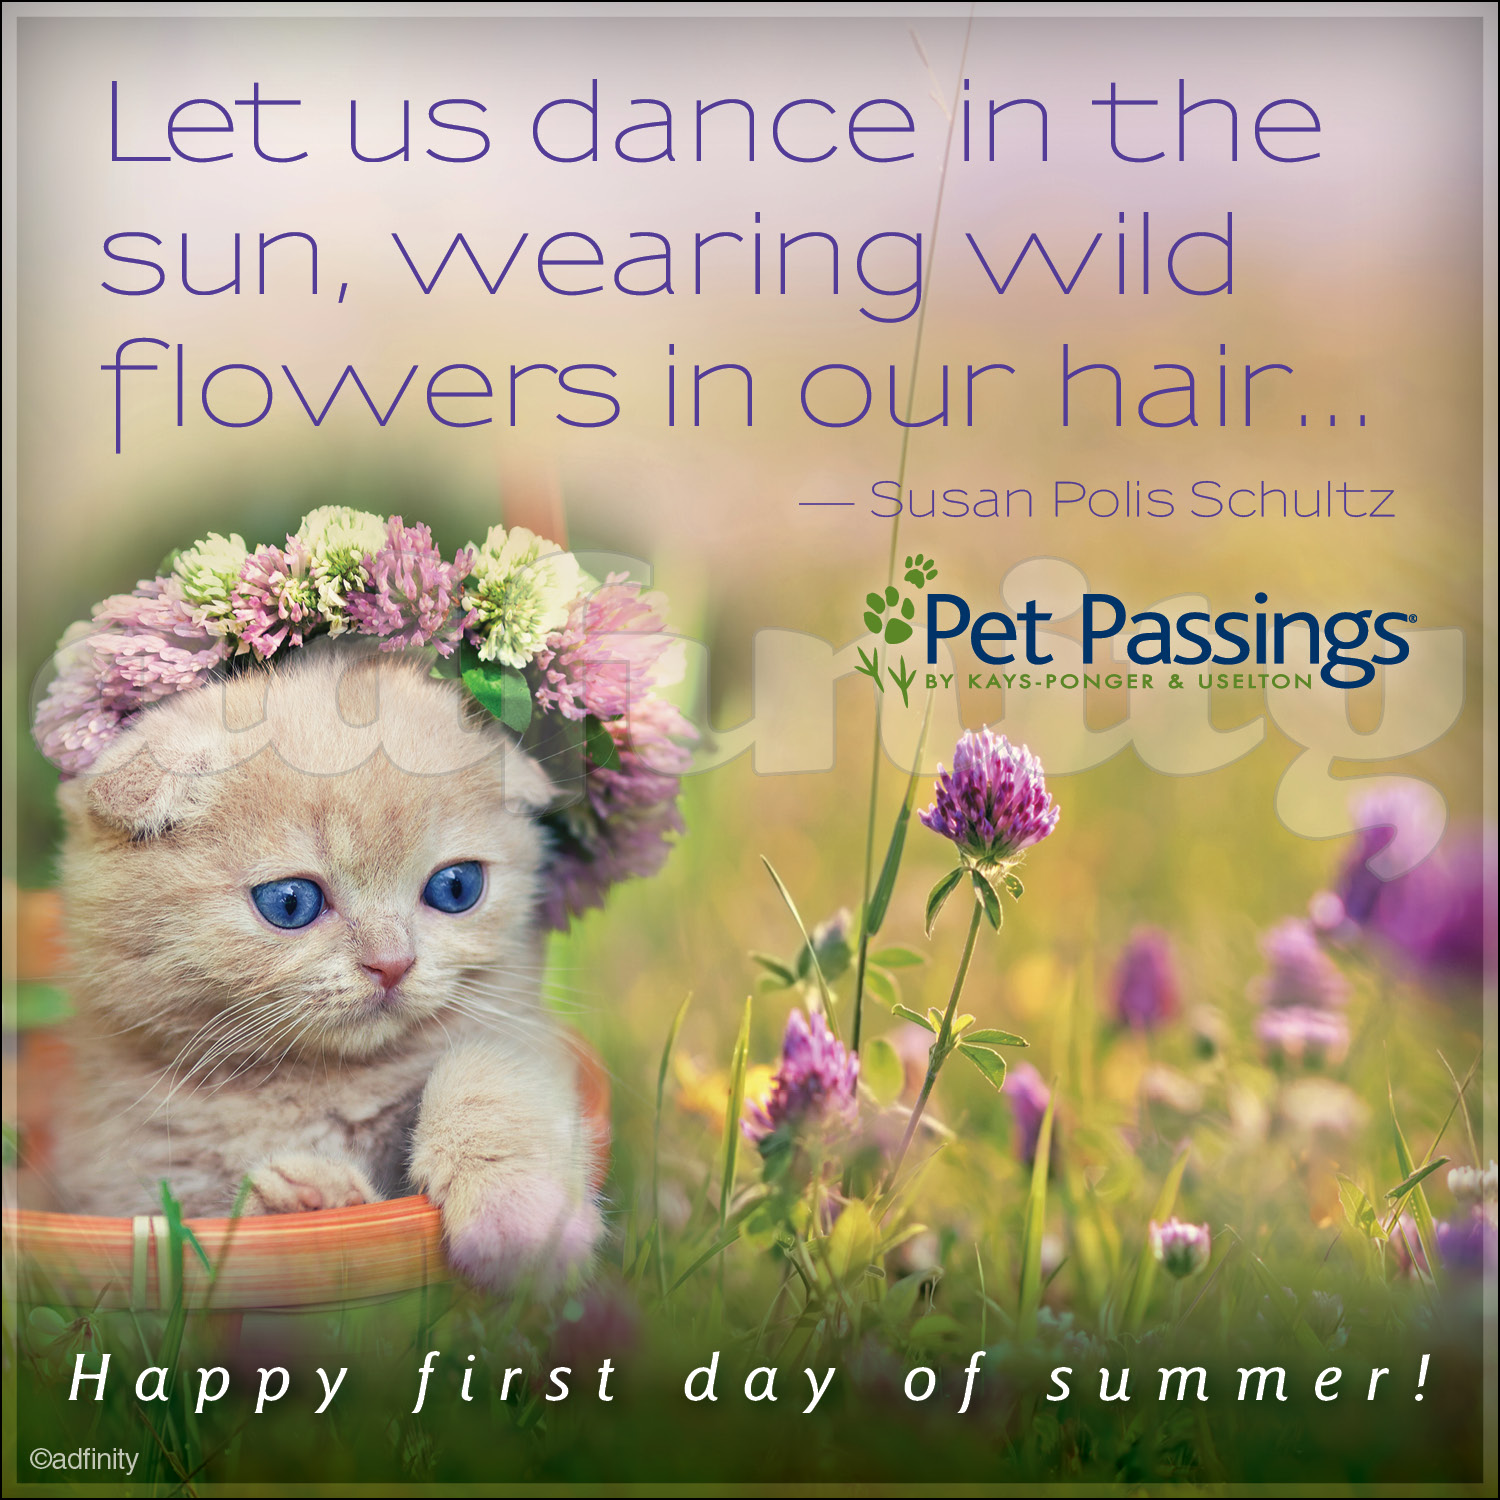 Superb 061504 Happy First Day Of Summer! Susan Polis Schultz Quote Facebook  Meme